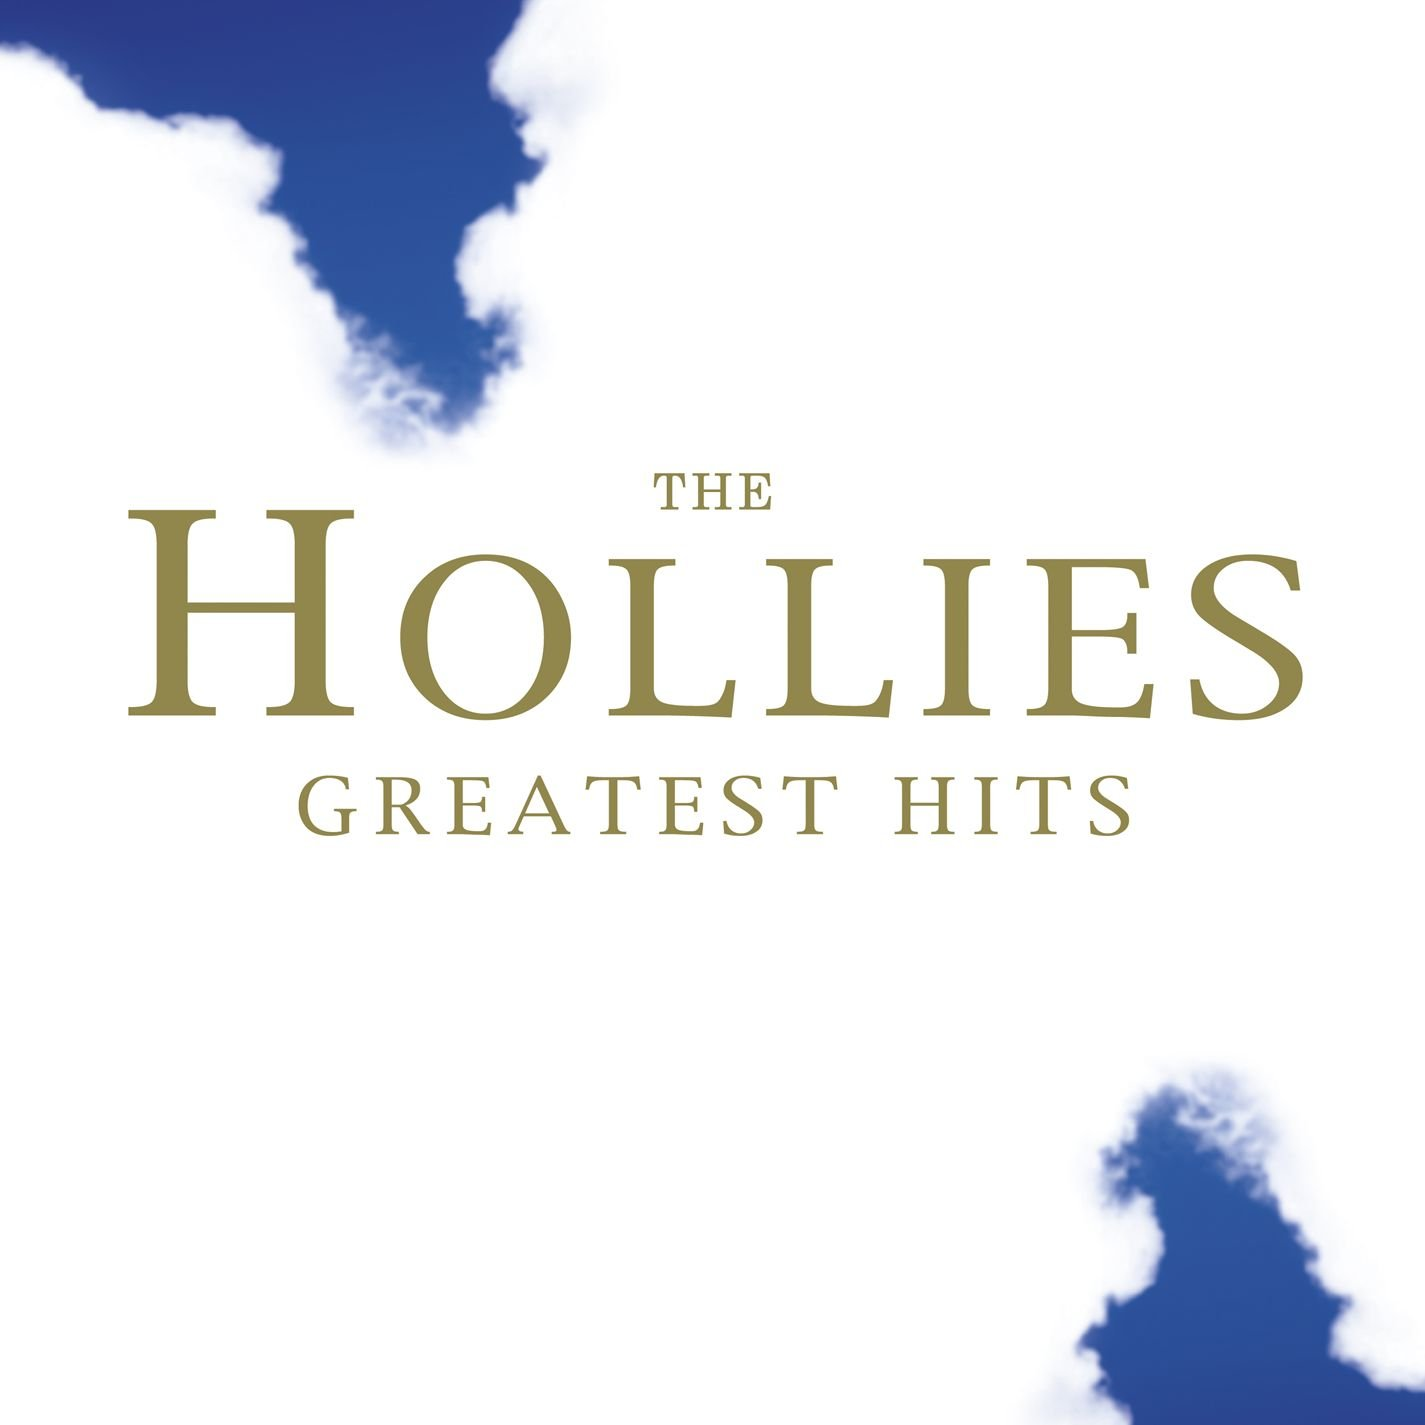 Greatest Hits - The Hollies by Parlophone